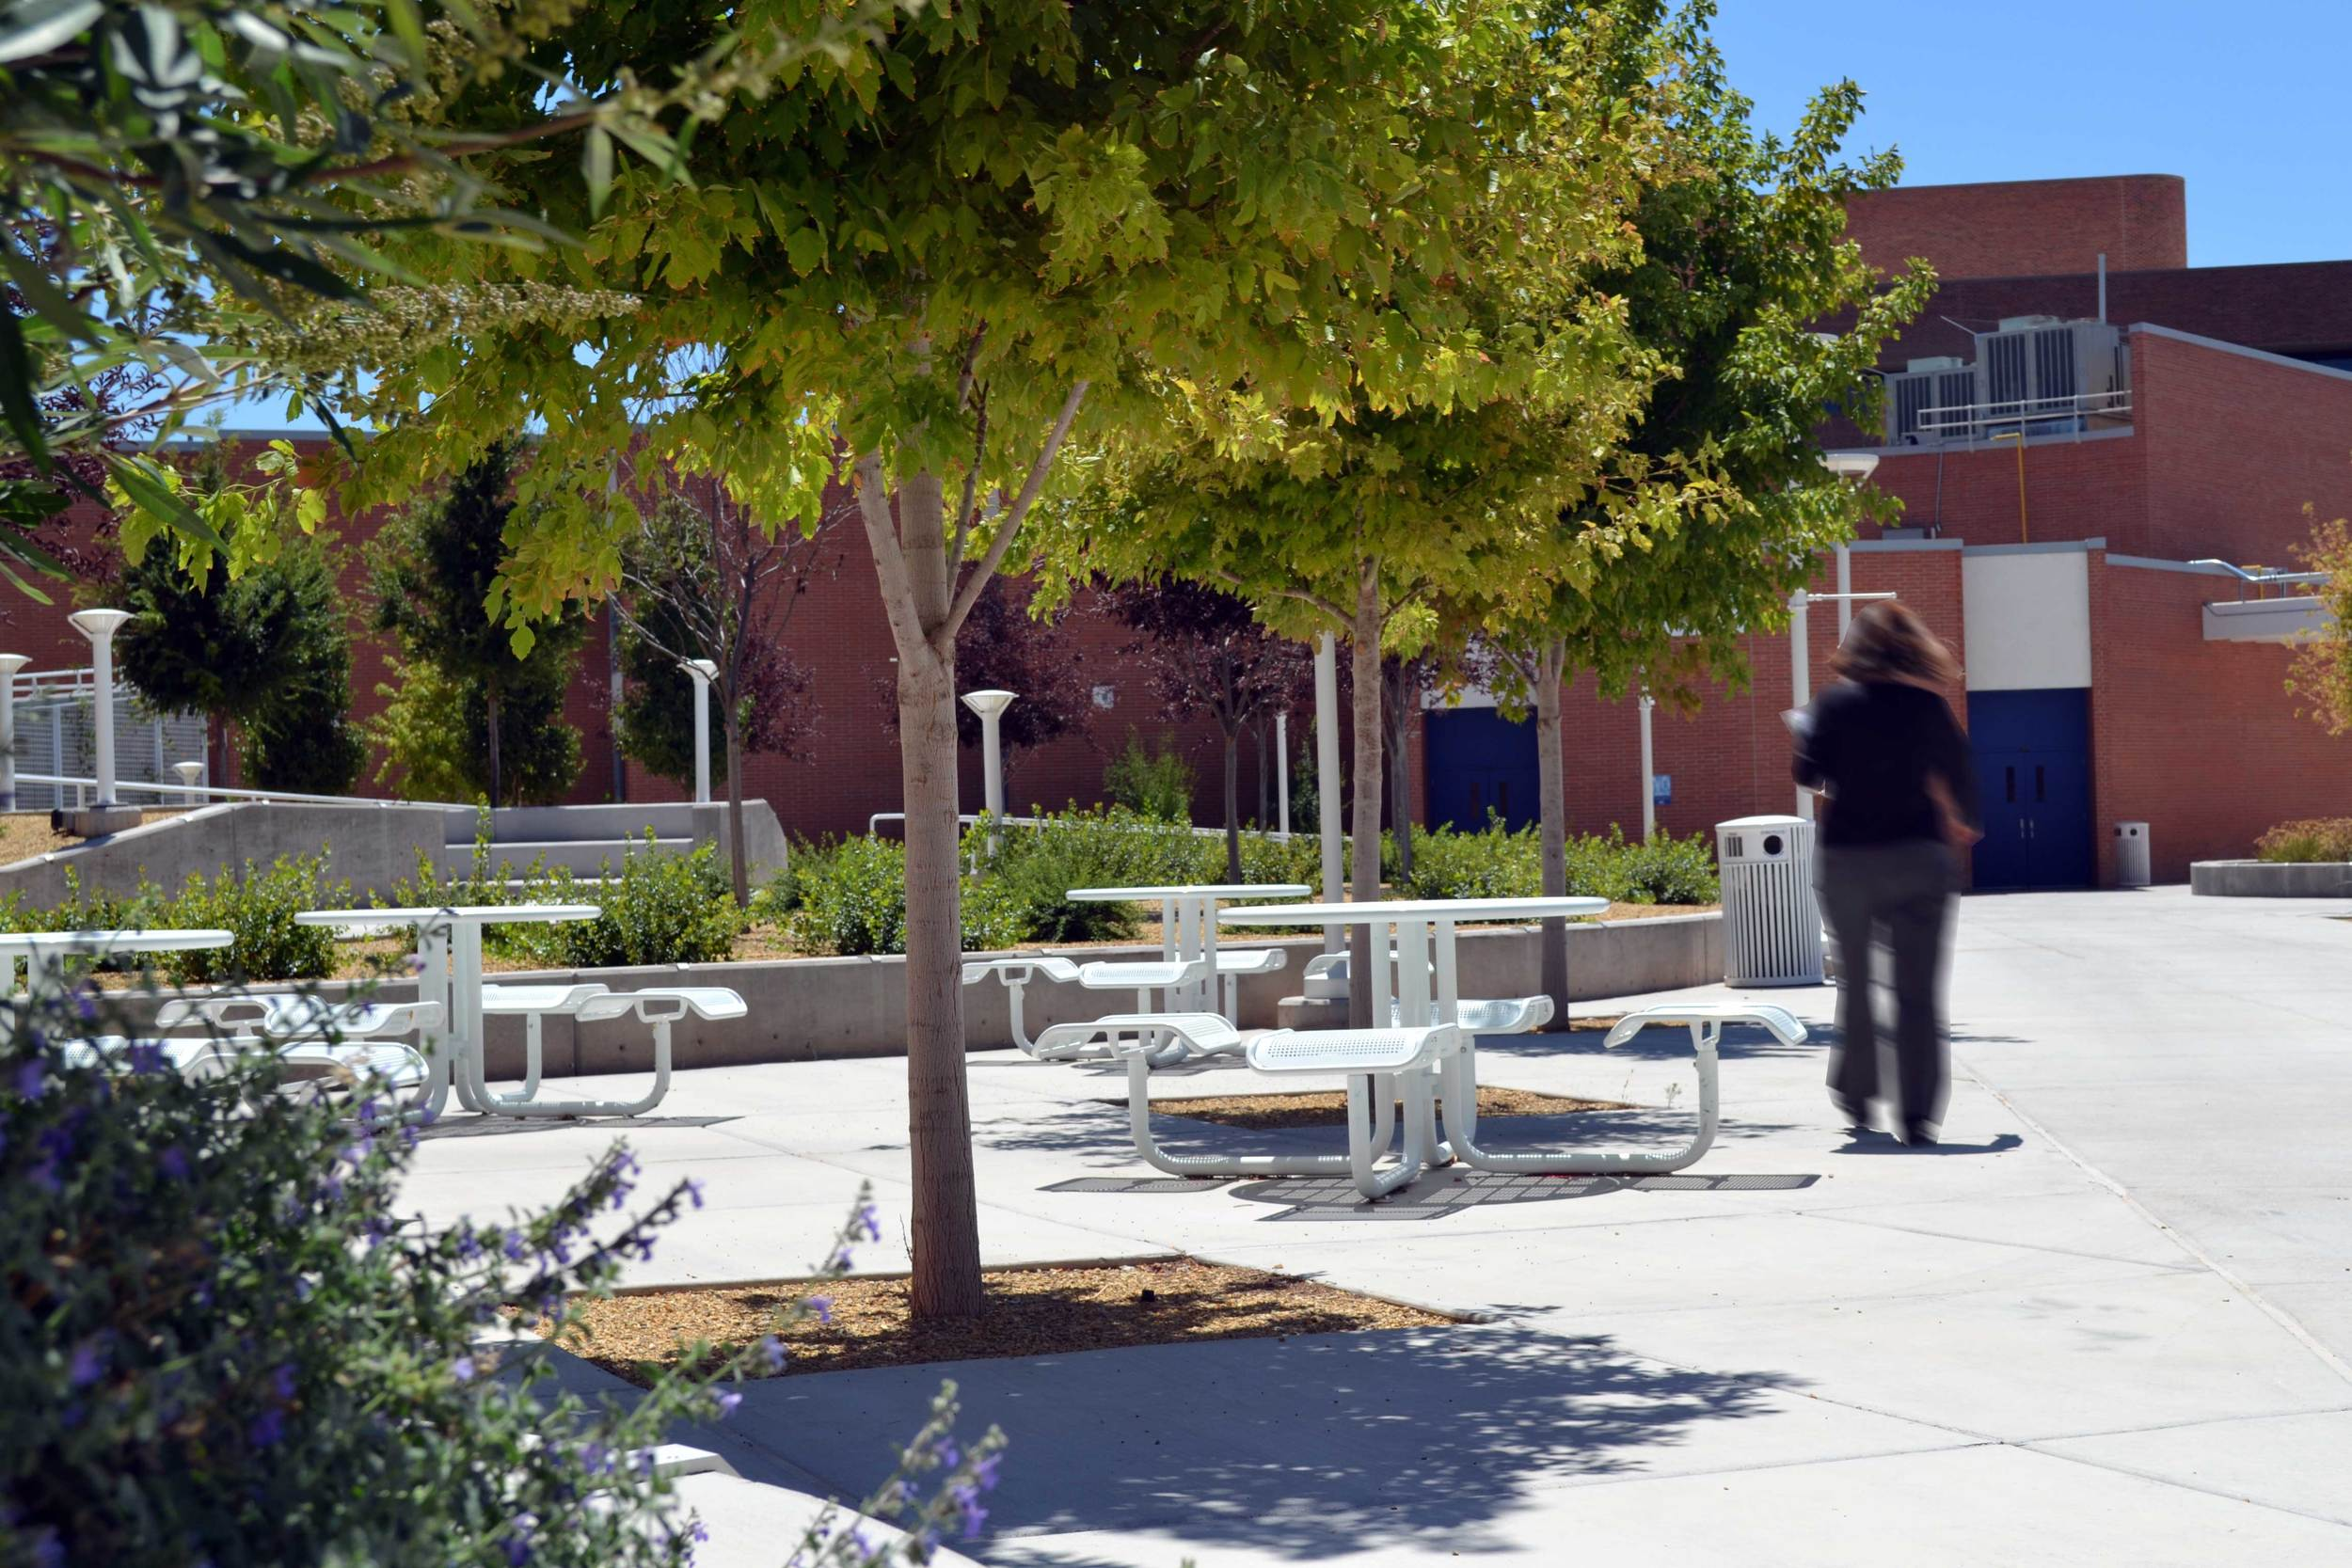 Shade trees are incorporated directly into the plaza paving